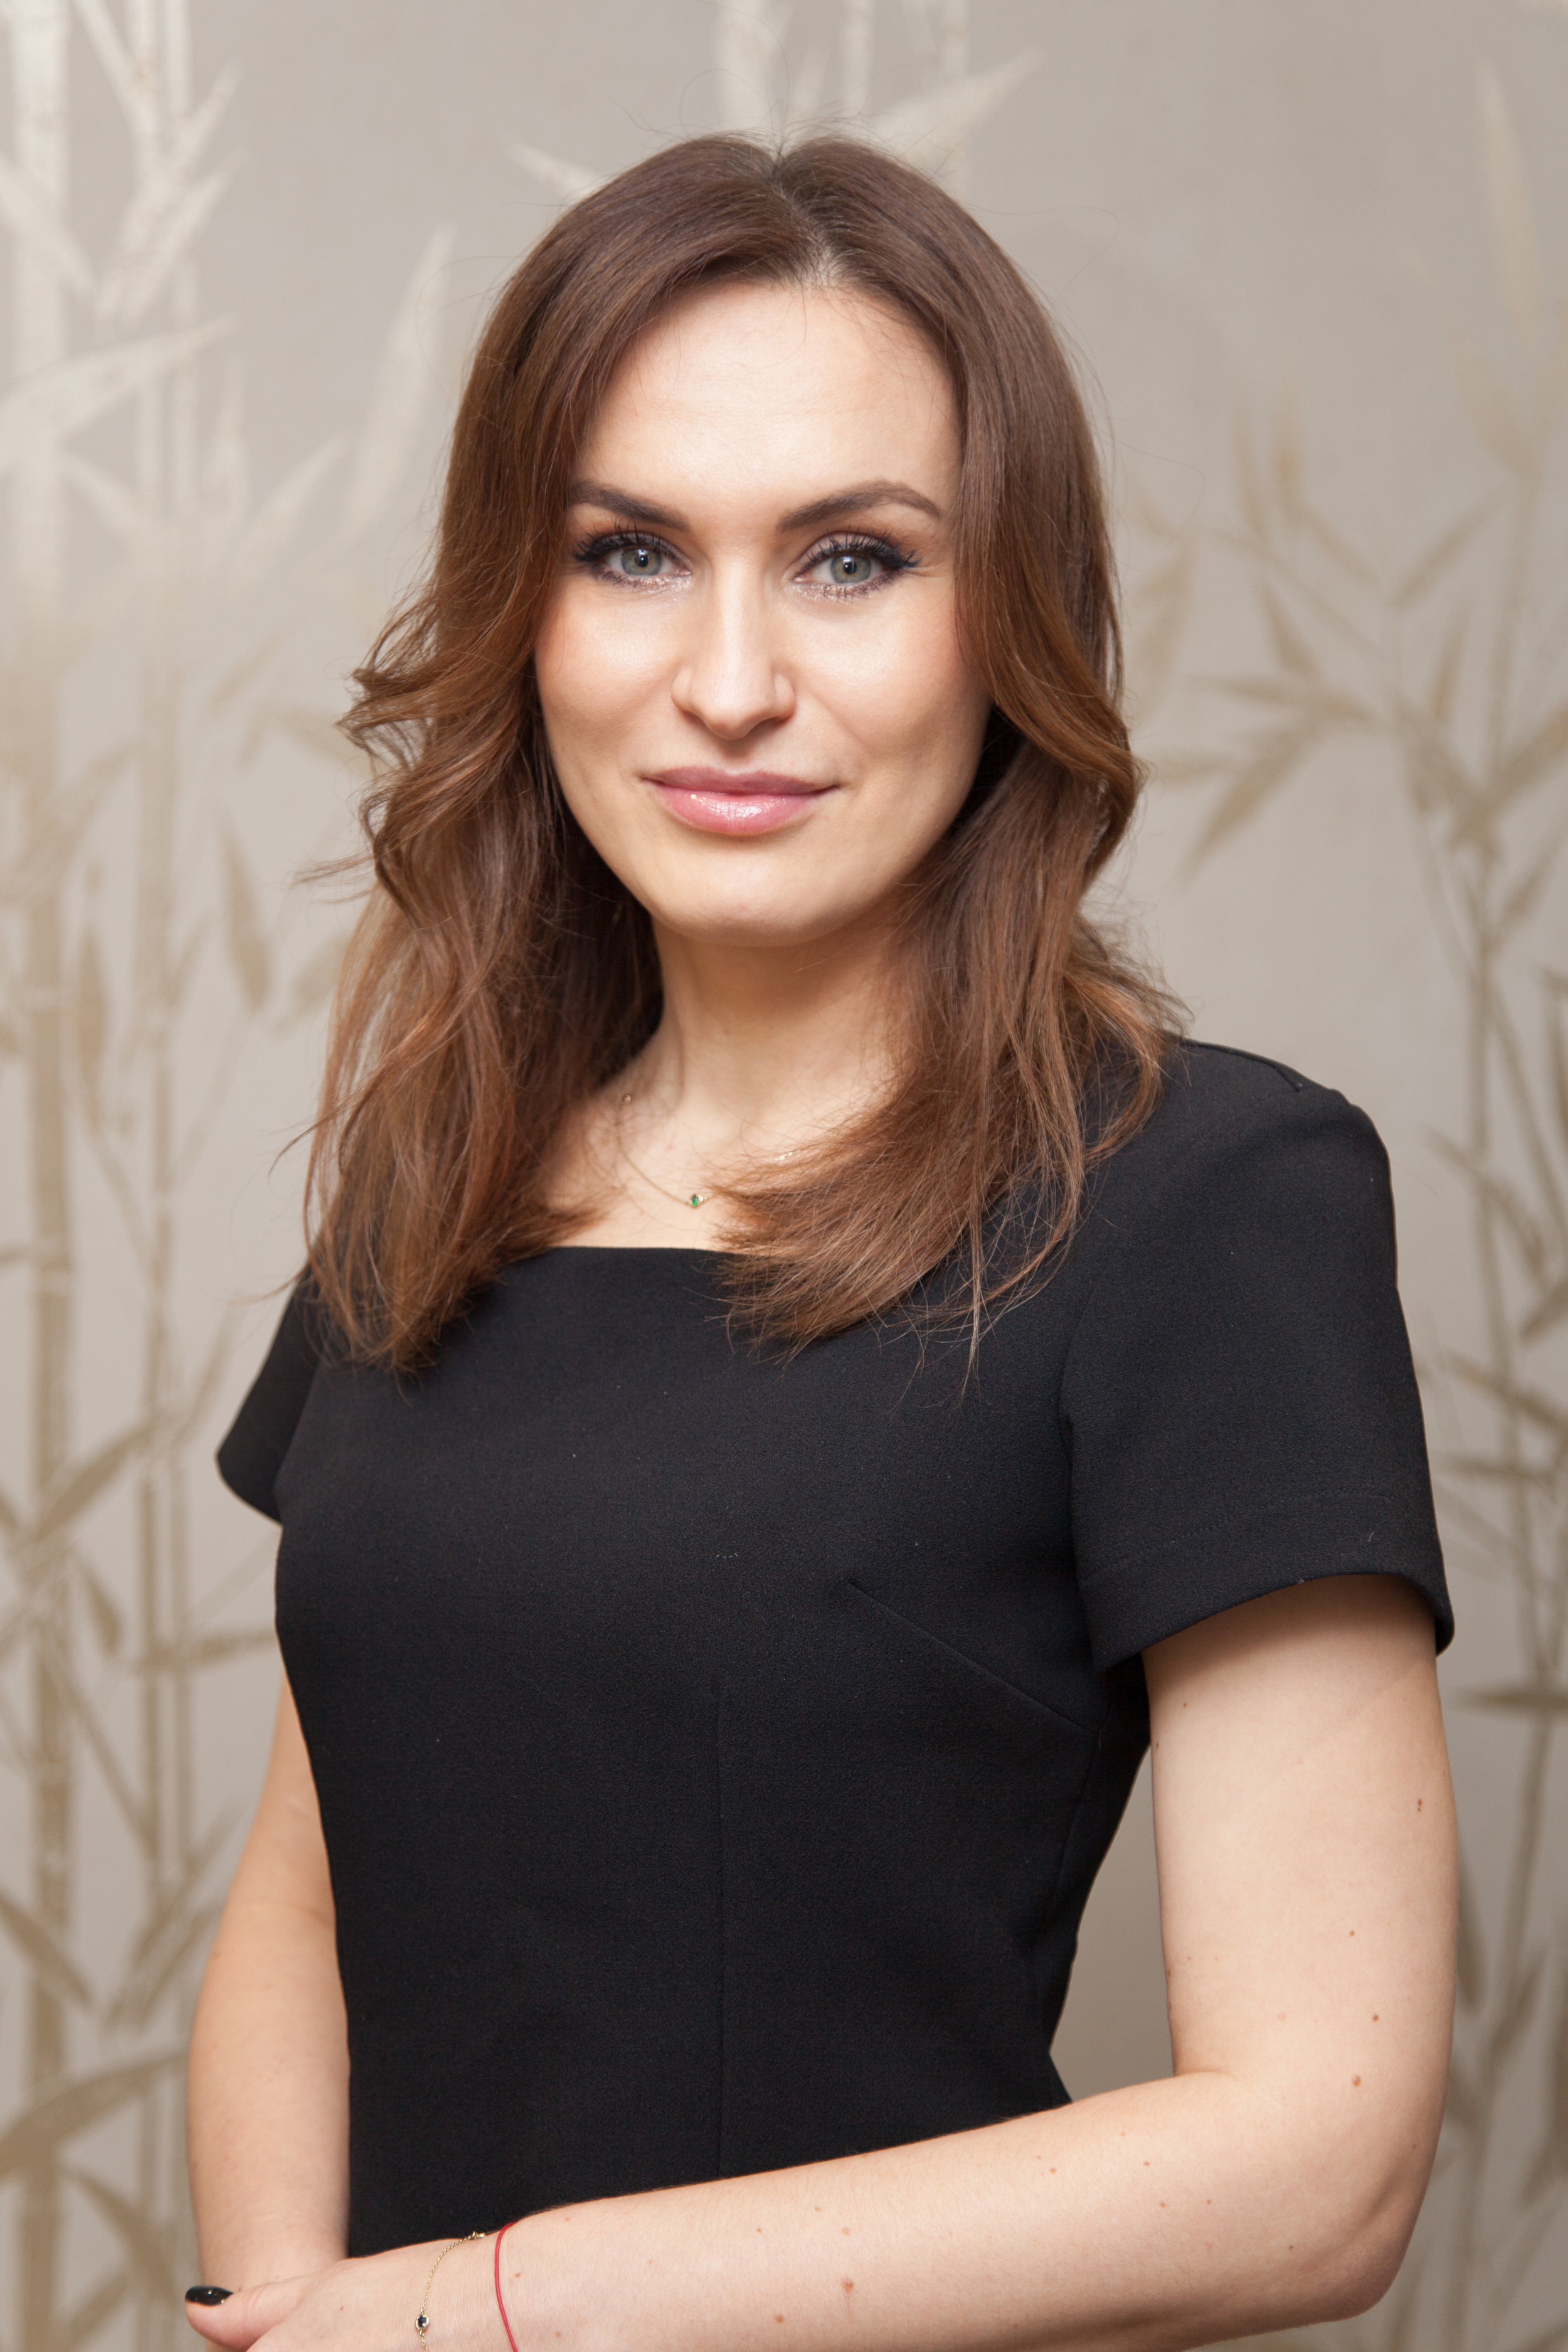 Alicia Janiec - Beauty and Aesthetic Specialist